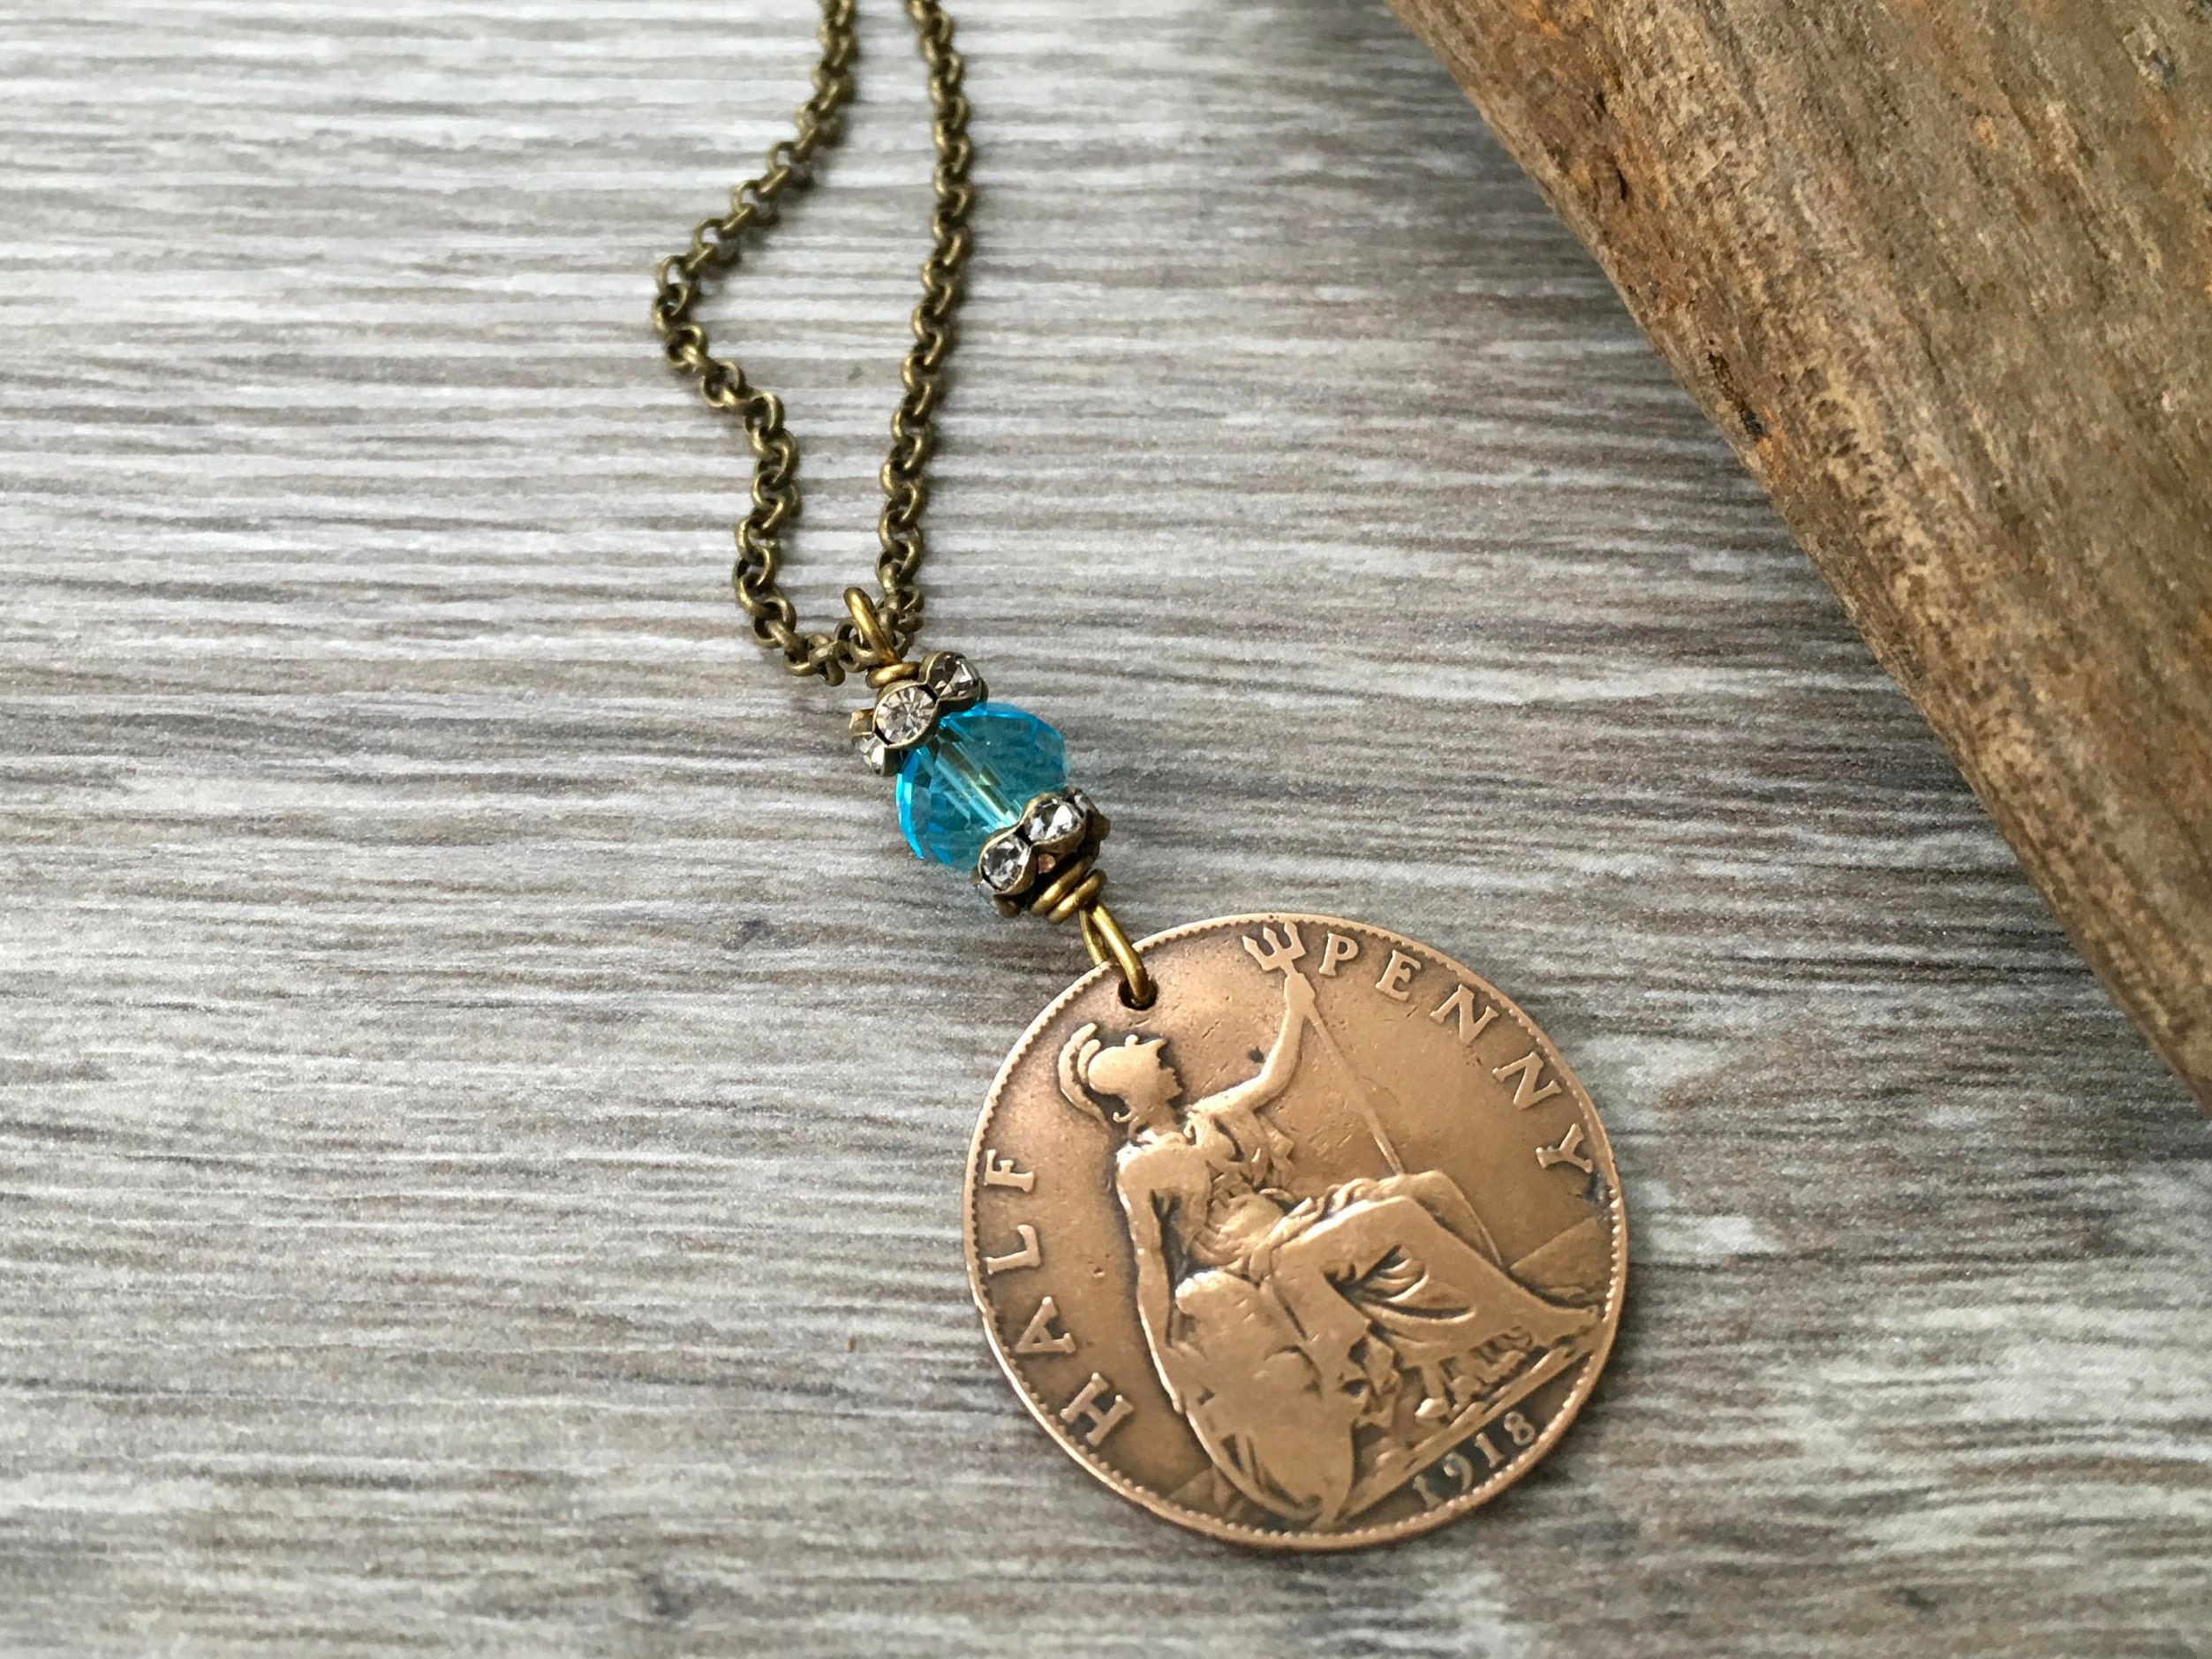 99th birthday gift 1918 coin necklace british half penny pendant uk